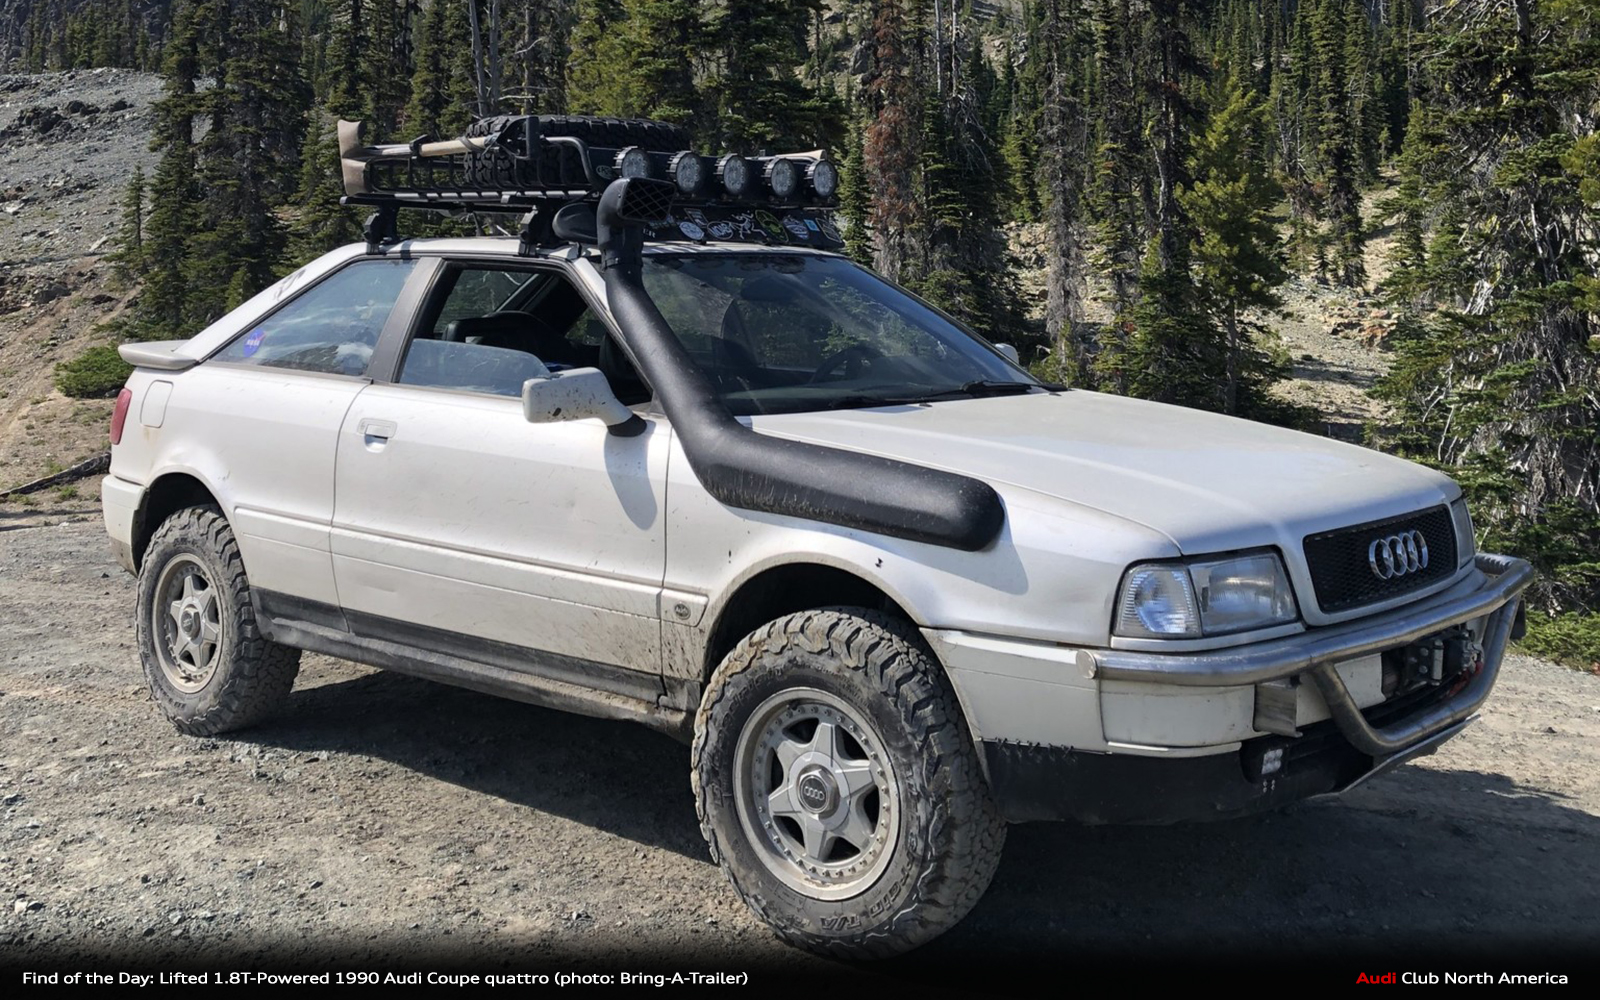 find of the day lifted 1 8t powered 1990 audi coupe quattro audi club north america lifted 1 8t powered 1990 audi coupe